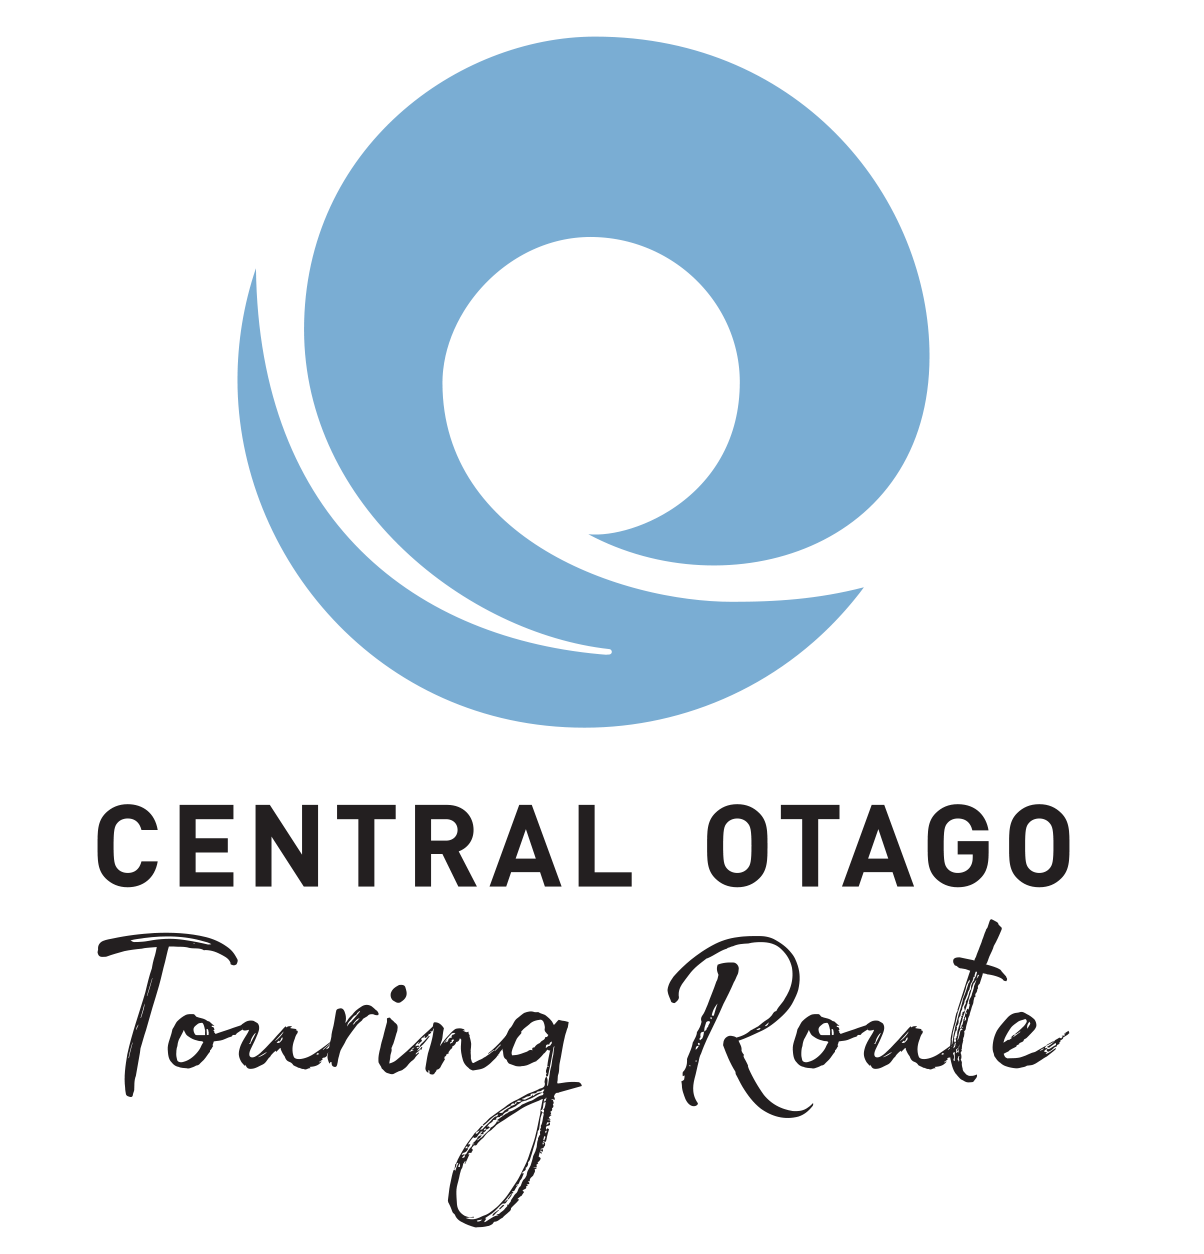 Central Otago Touring Route